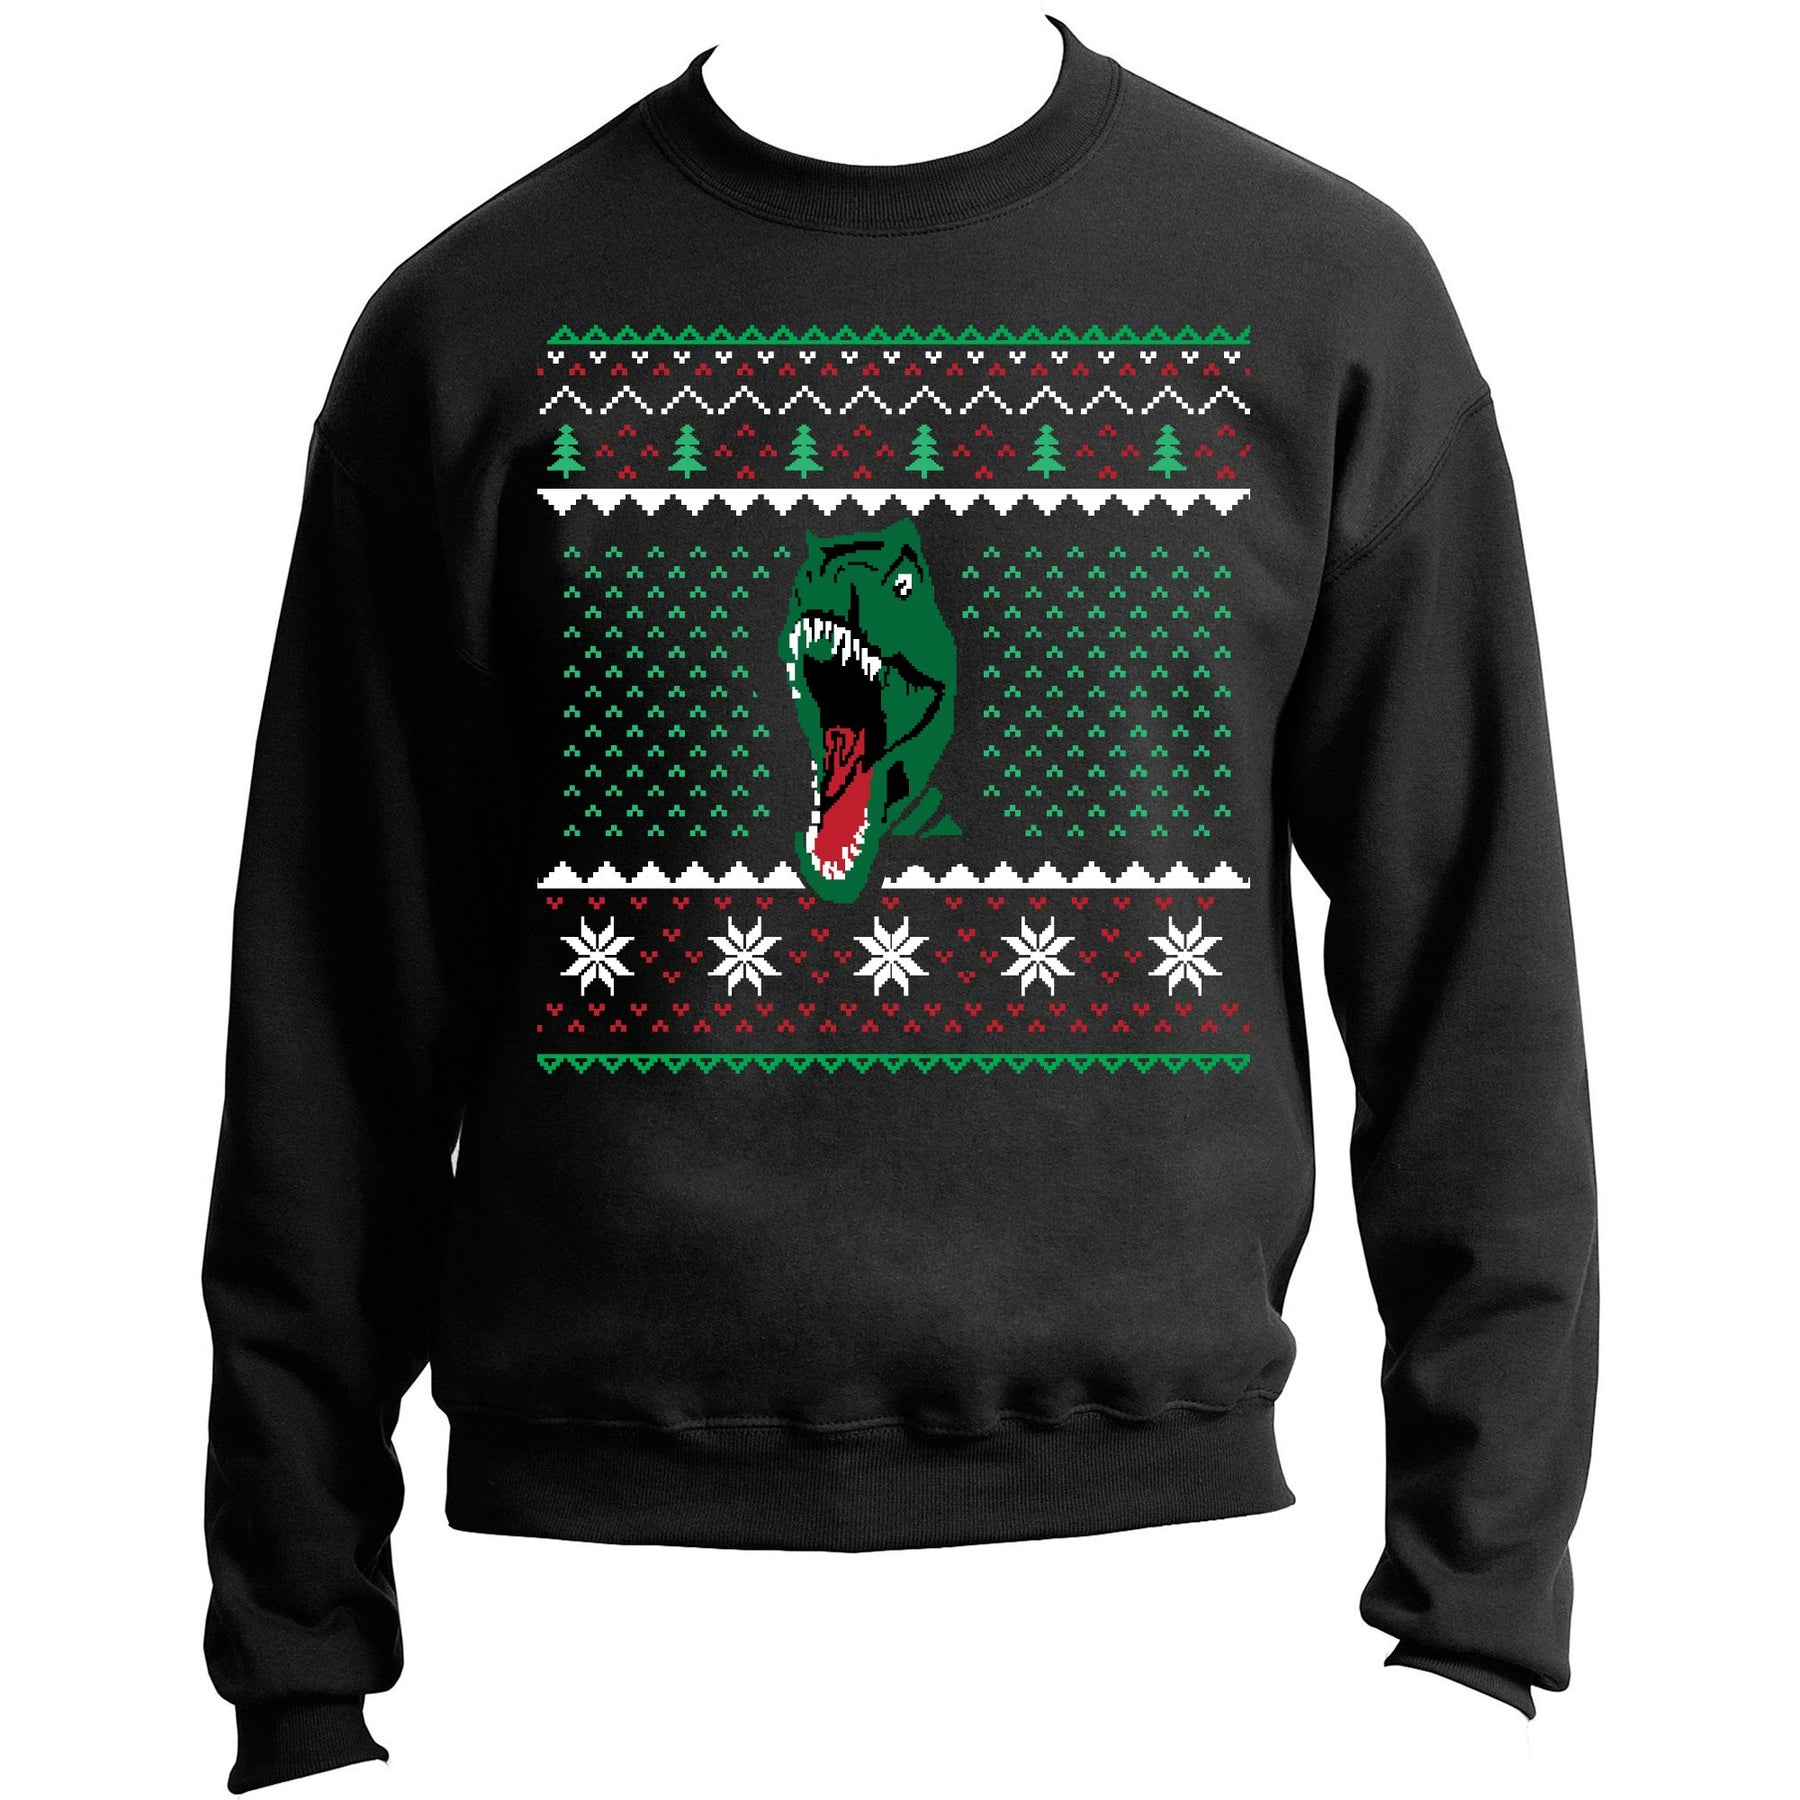 T Rex Ugly Christmas Sweater.Dinosaur T Rex Ugly Christmas Sweater